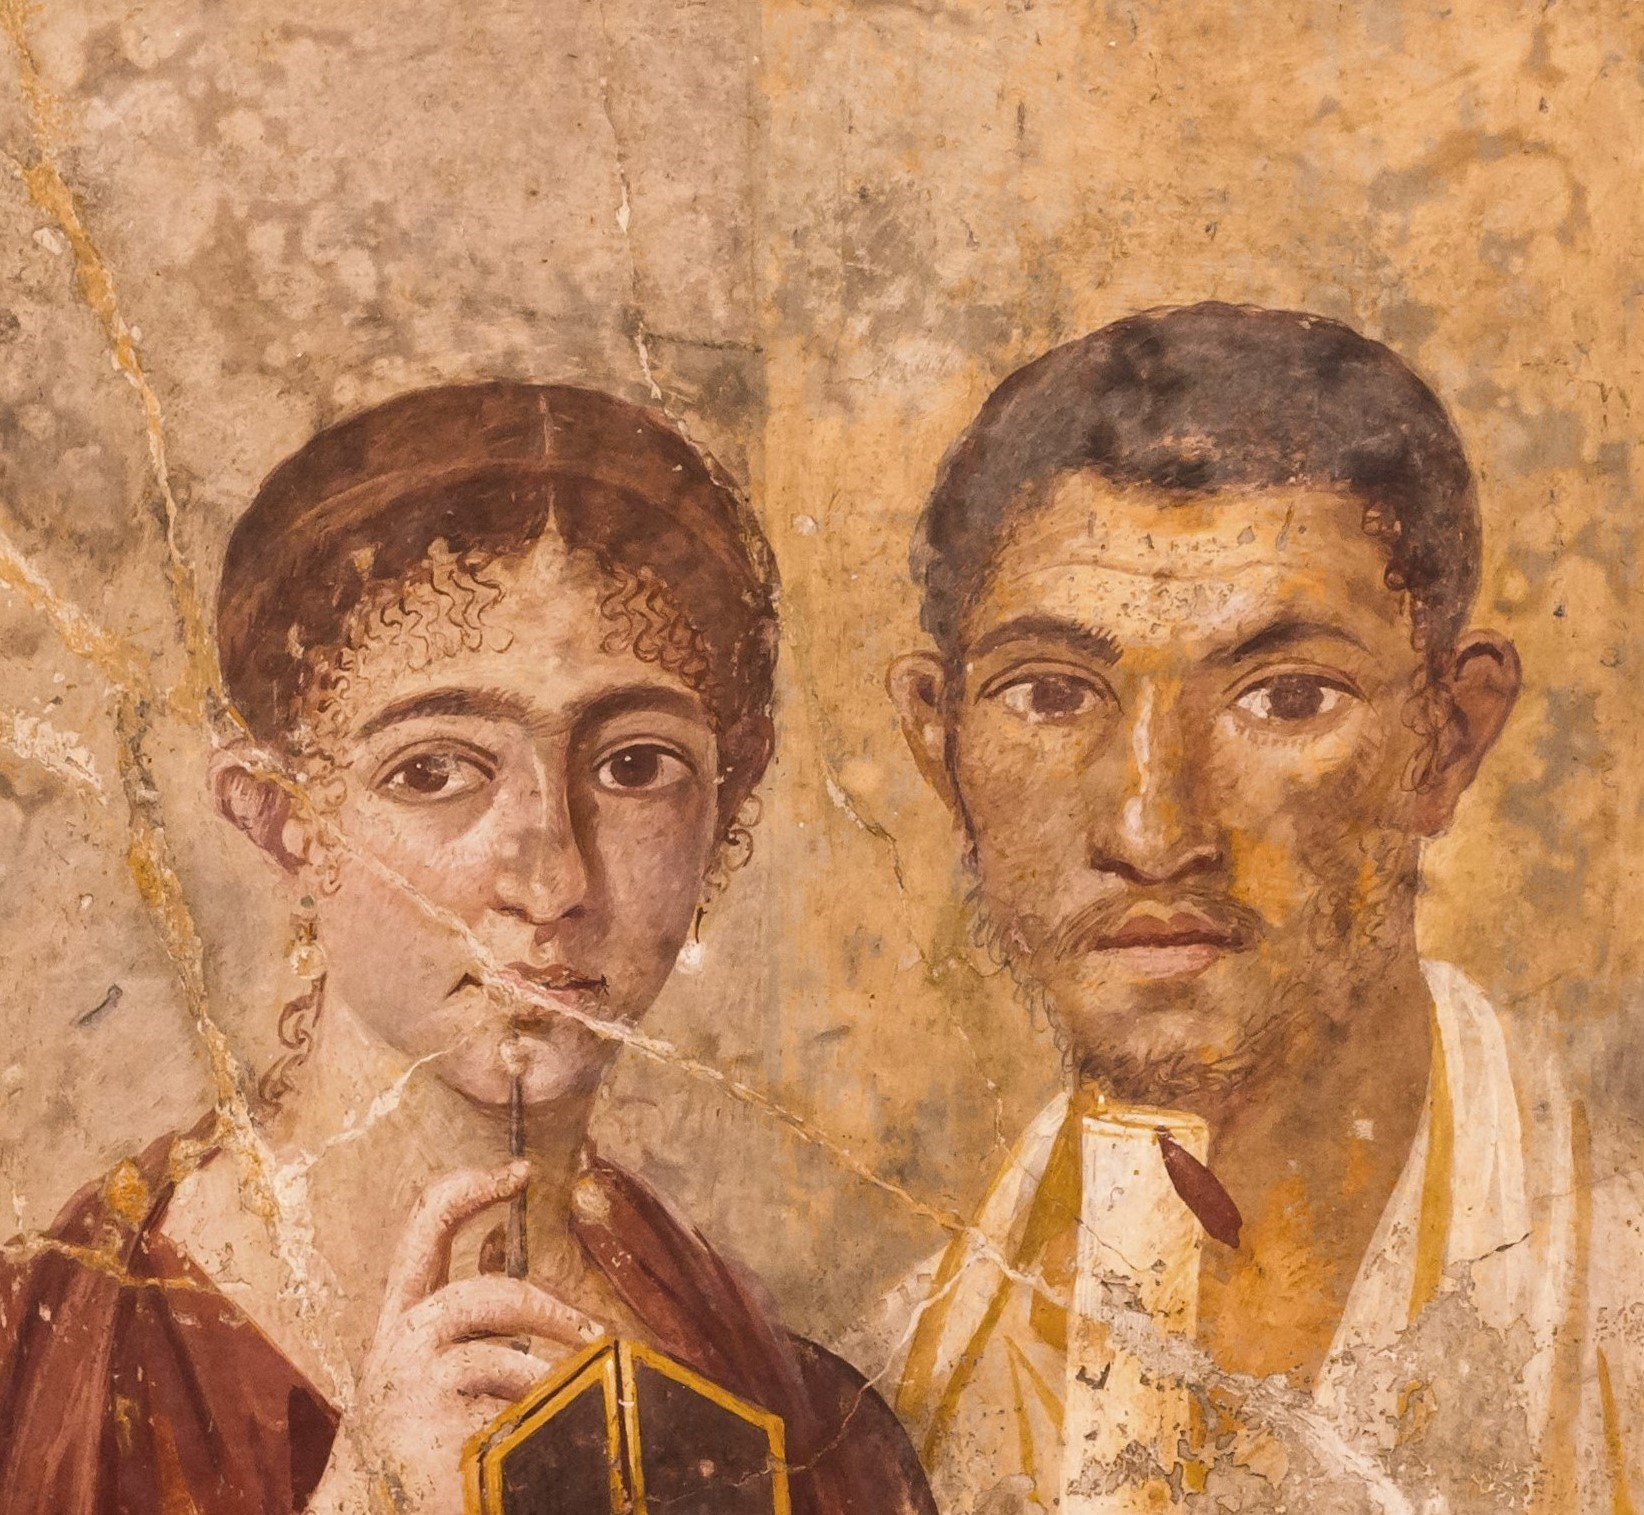 Roman fresco from Pompei depicting a man holding a scroll and a woman holding a stylus and wax tablet.